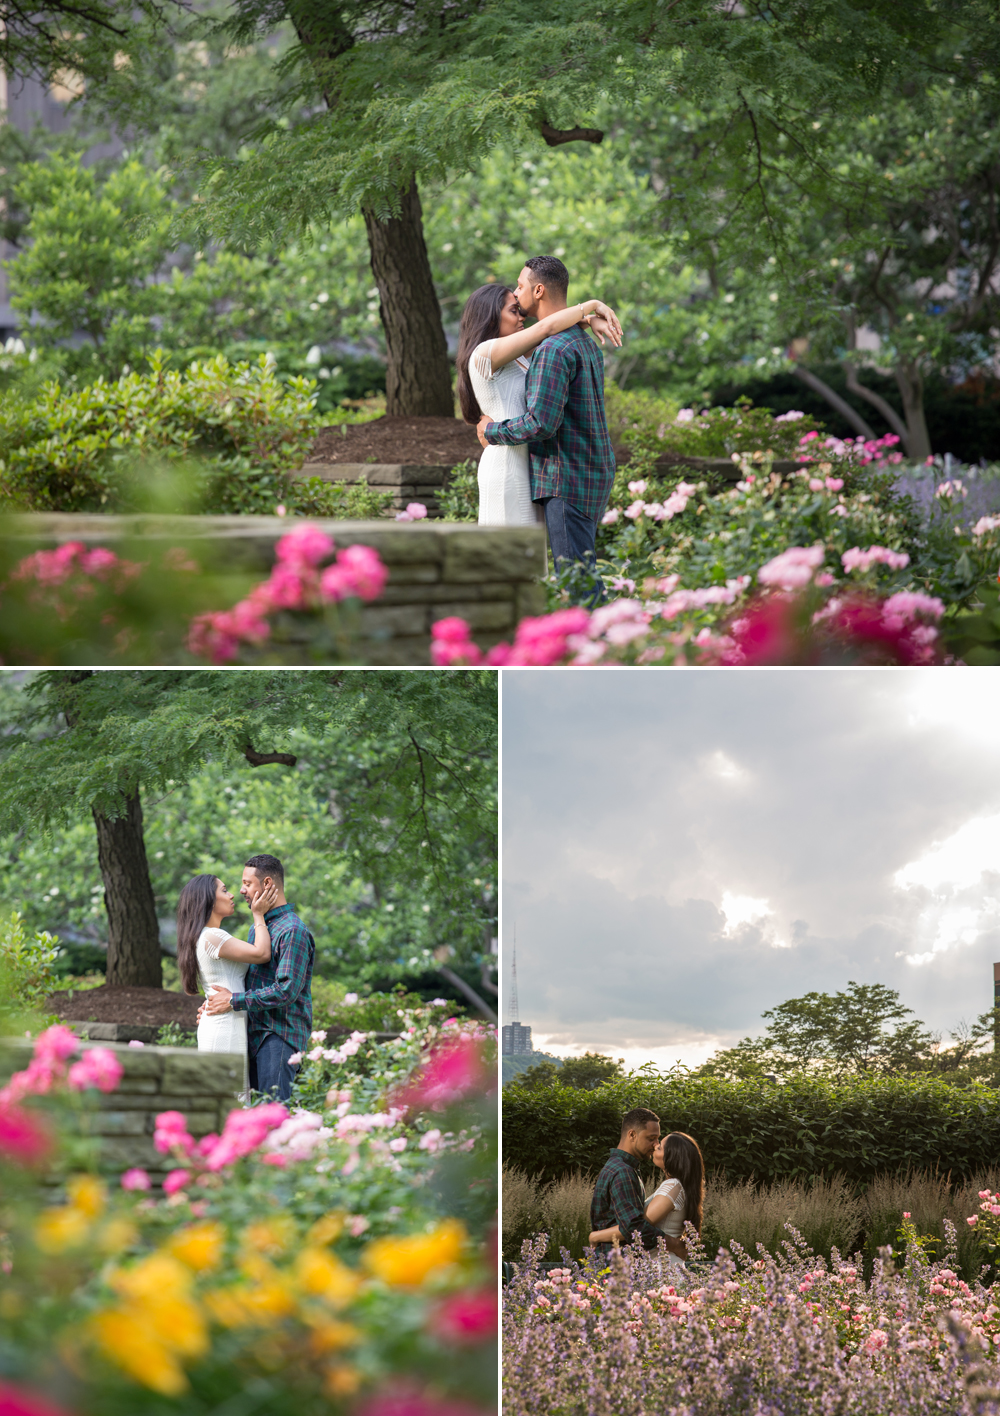 pittsburgh-wedding-photographer-engagement-at-point-state-park-man-nguyen-photography-1